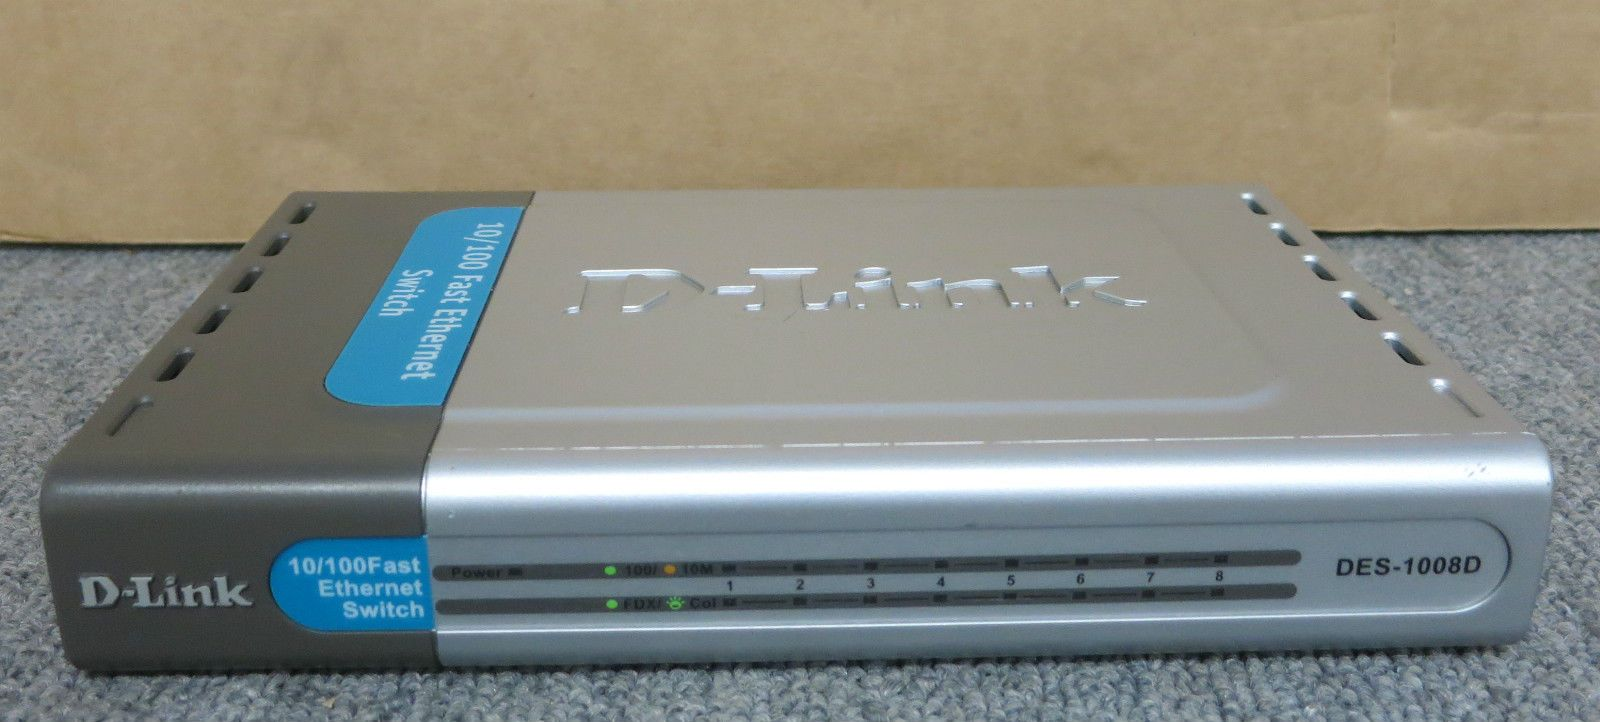 D Link DES 1008D 8 Port 10 100 Fast Ethernet Switch Without AC Adapter